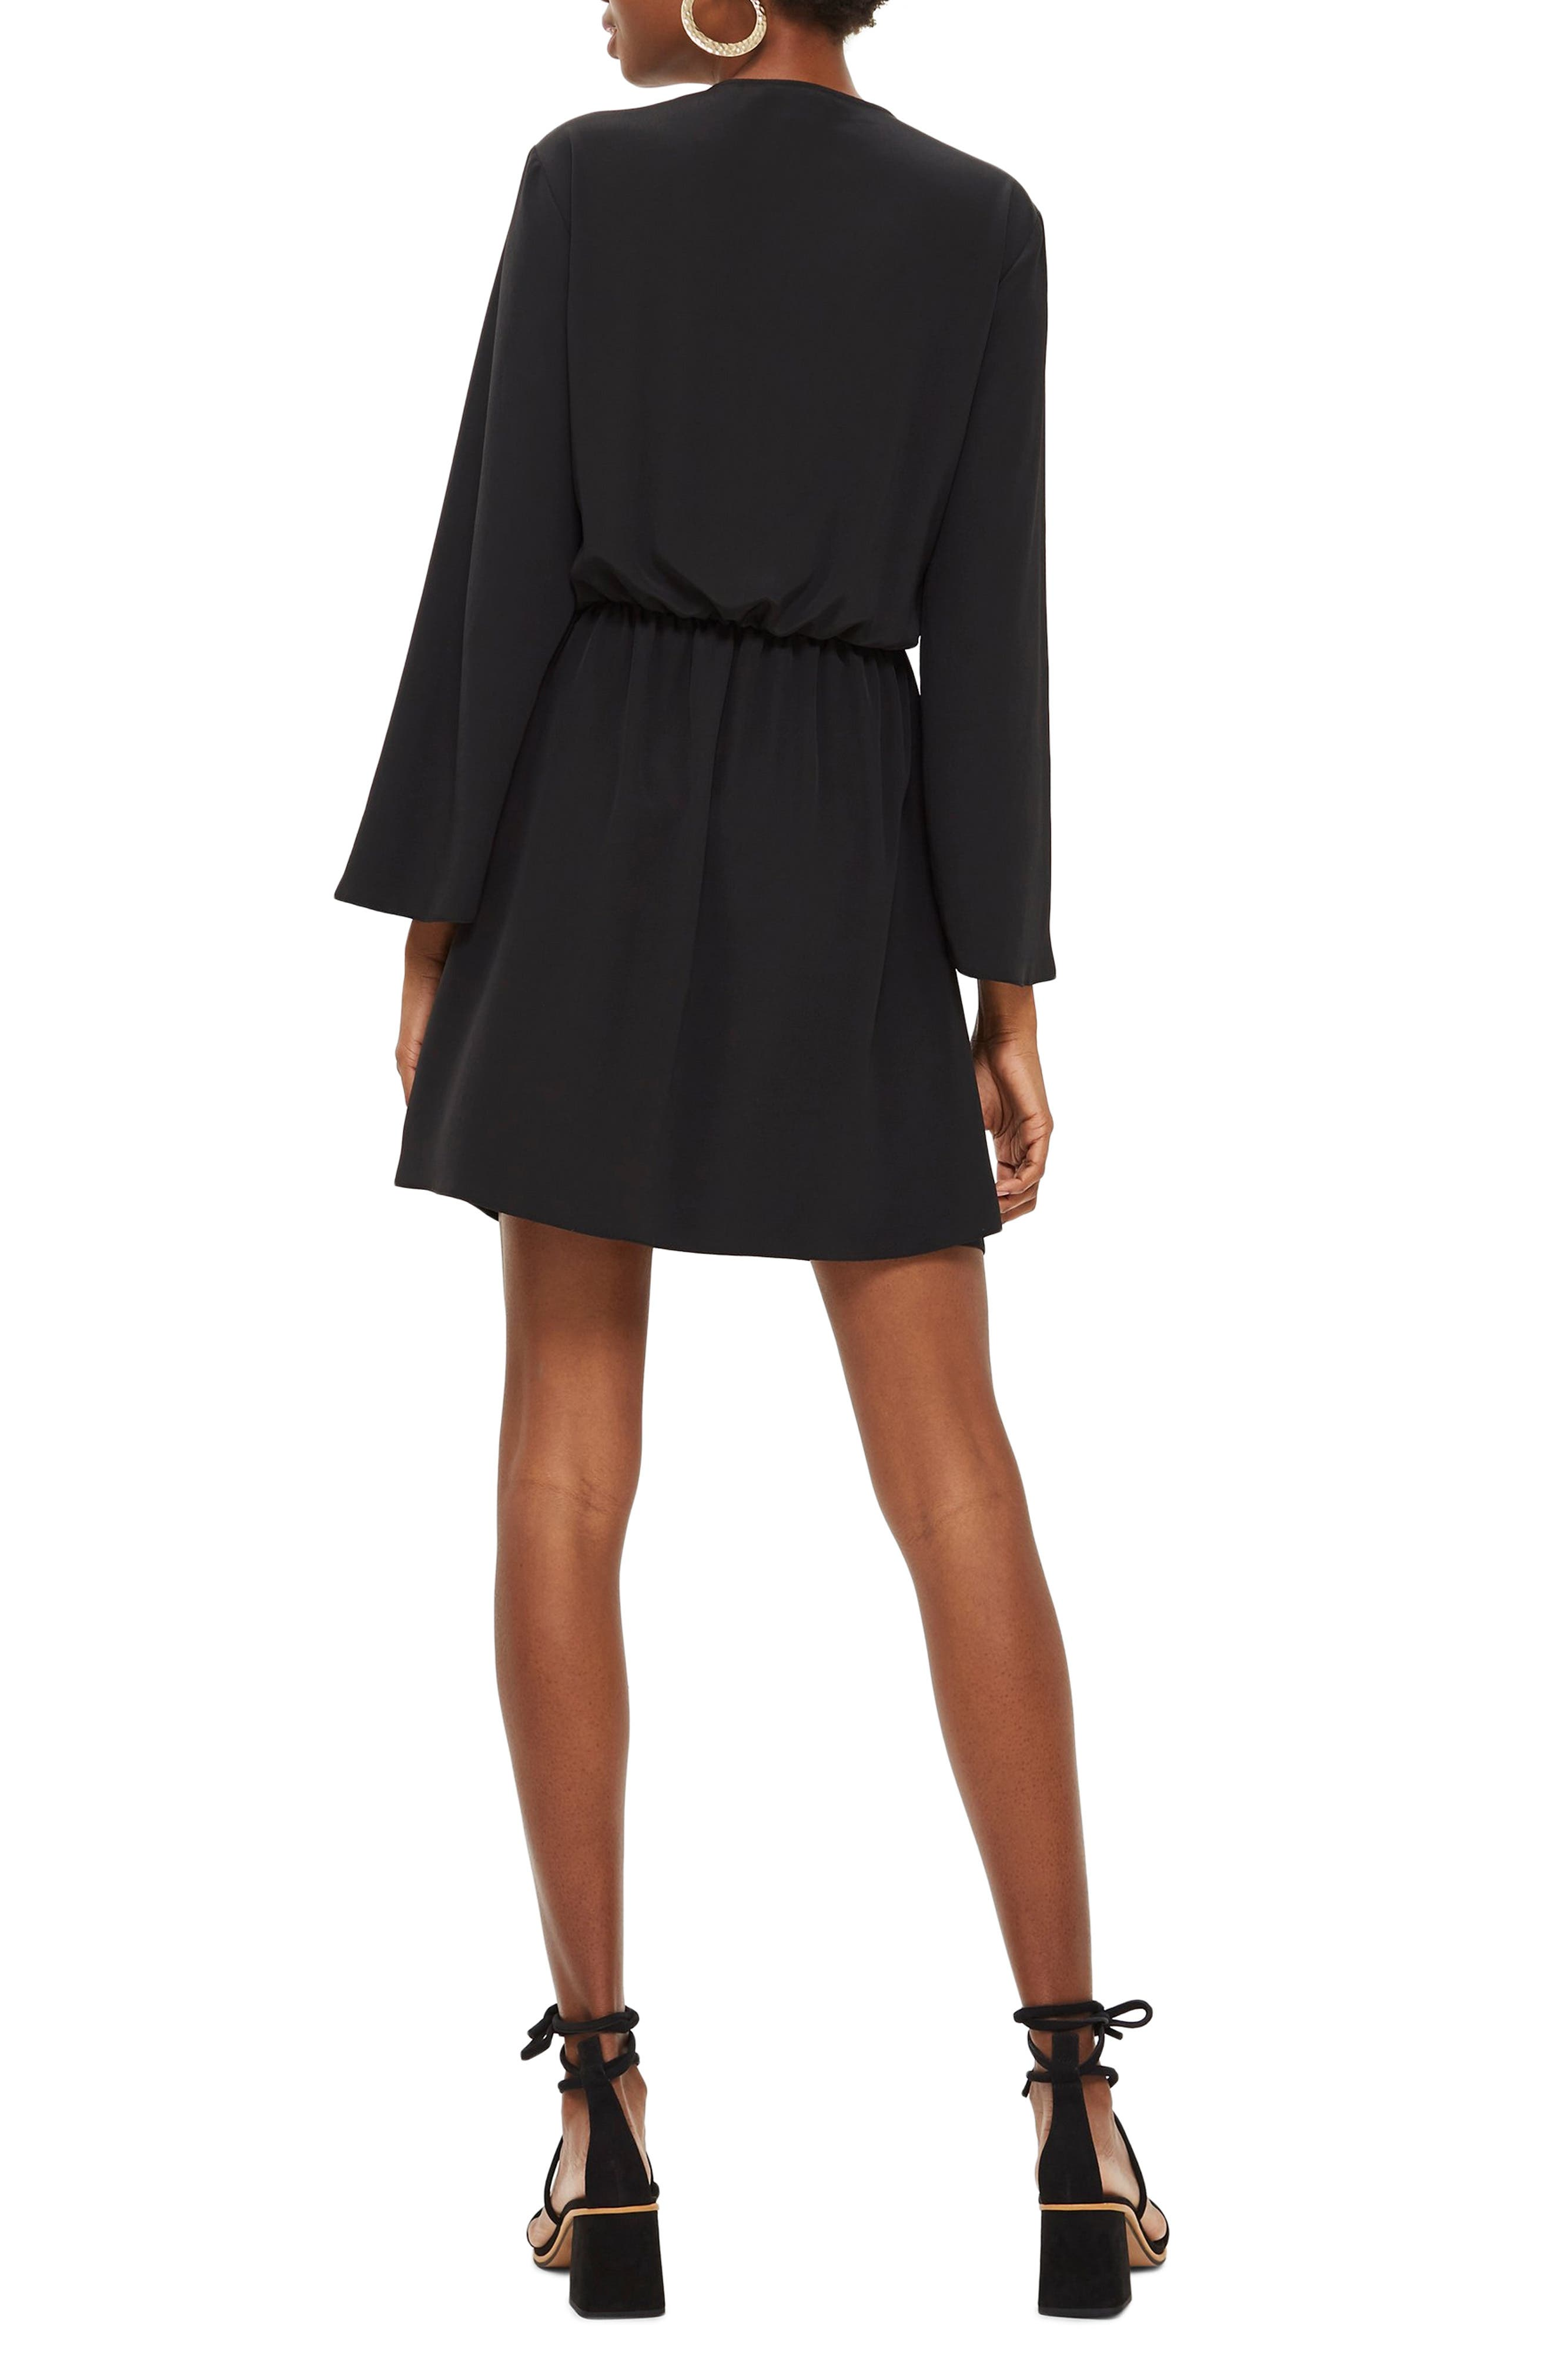 Tiffany Knot Minidress,                             Alternate thumbnail 2, color,                             BLACK